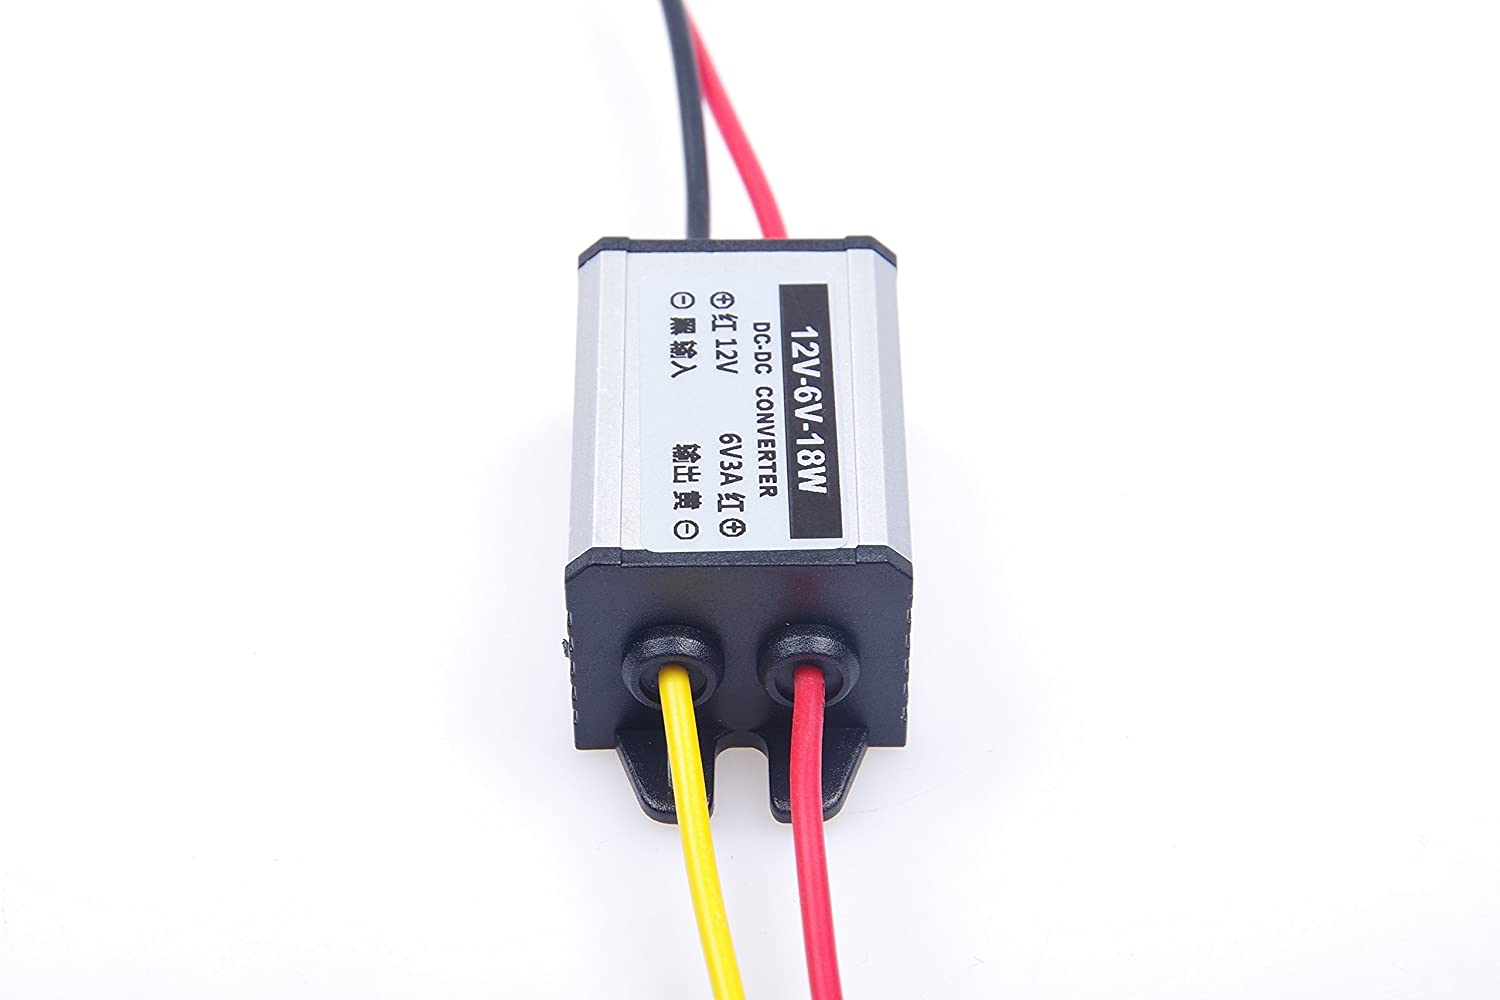 KNACRO DC-DC 12V to 6V 3A Step-Down Power Supply Module Car Power Converter Module Synchronous Buck Aluminum Shell Flame Retardant Over-Temperature Over-Current Short Circuit Protection